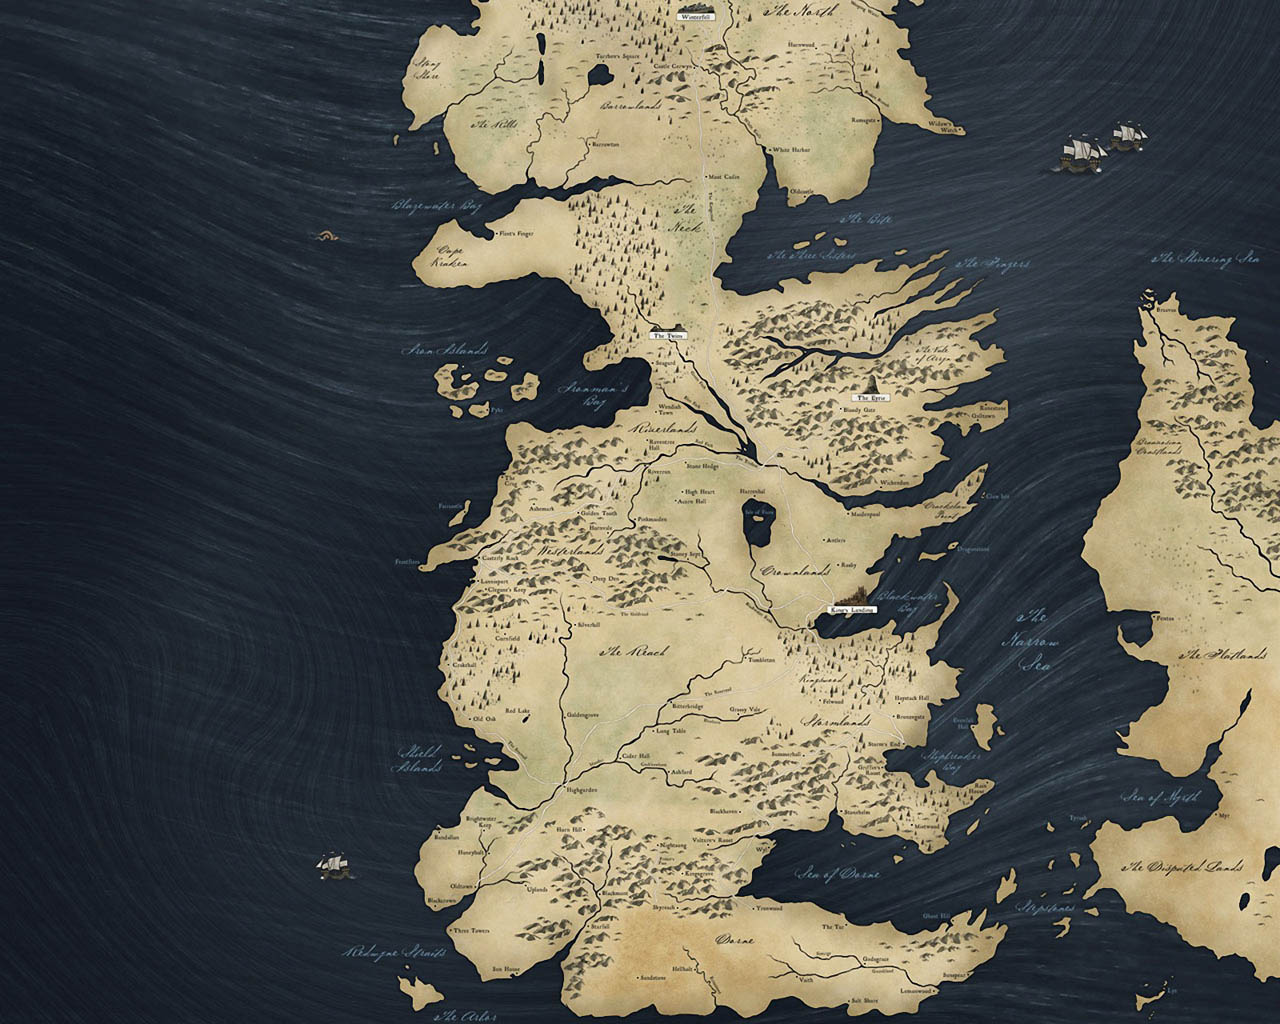 Game of Thrones Map 1280x1024 Wallpapers 1280x1024 Wallpapers 1280x1024